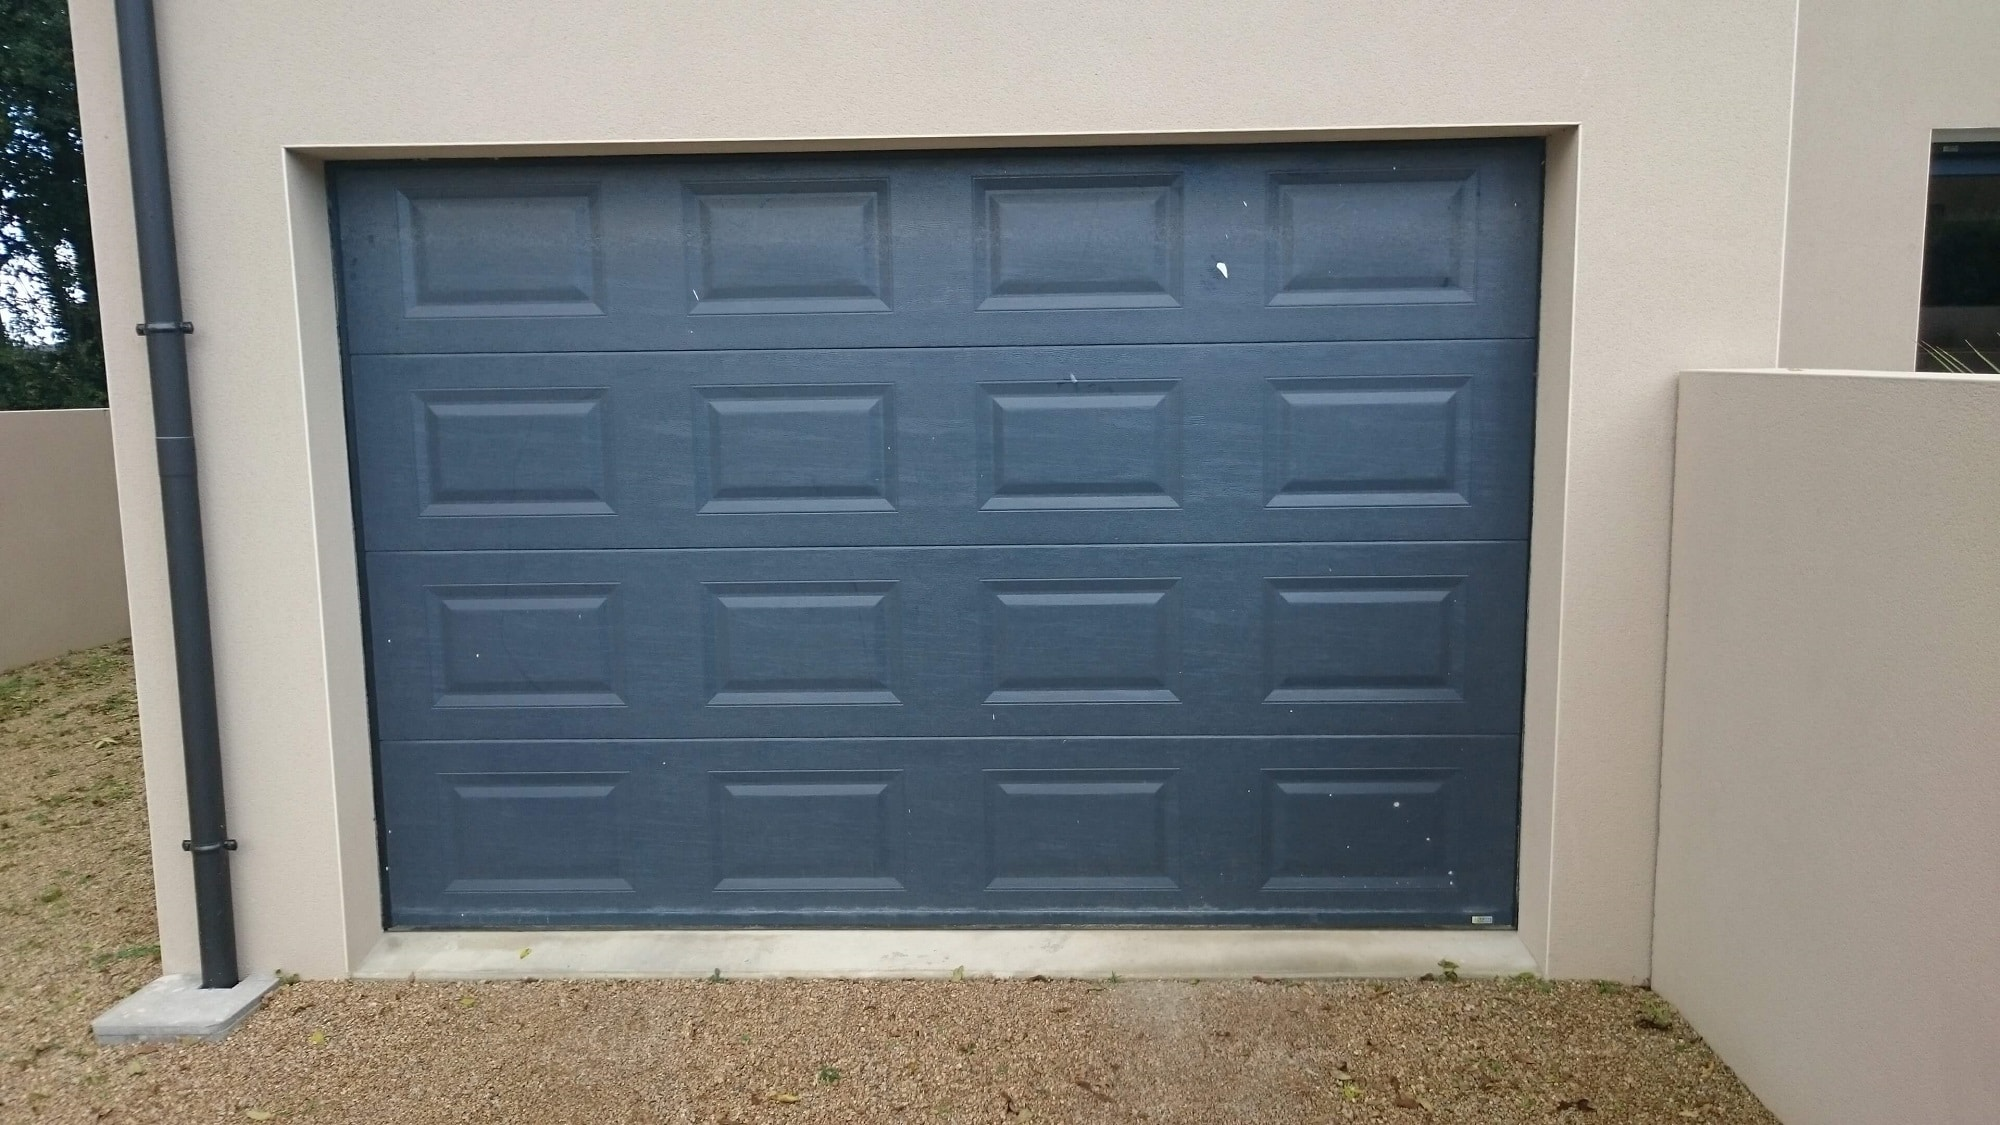 solabaie.fr/wp-content/uploads/2015/10/porte-garage-grise-anthracite-solabaie-le-maitre-charles